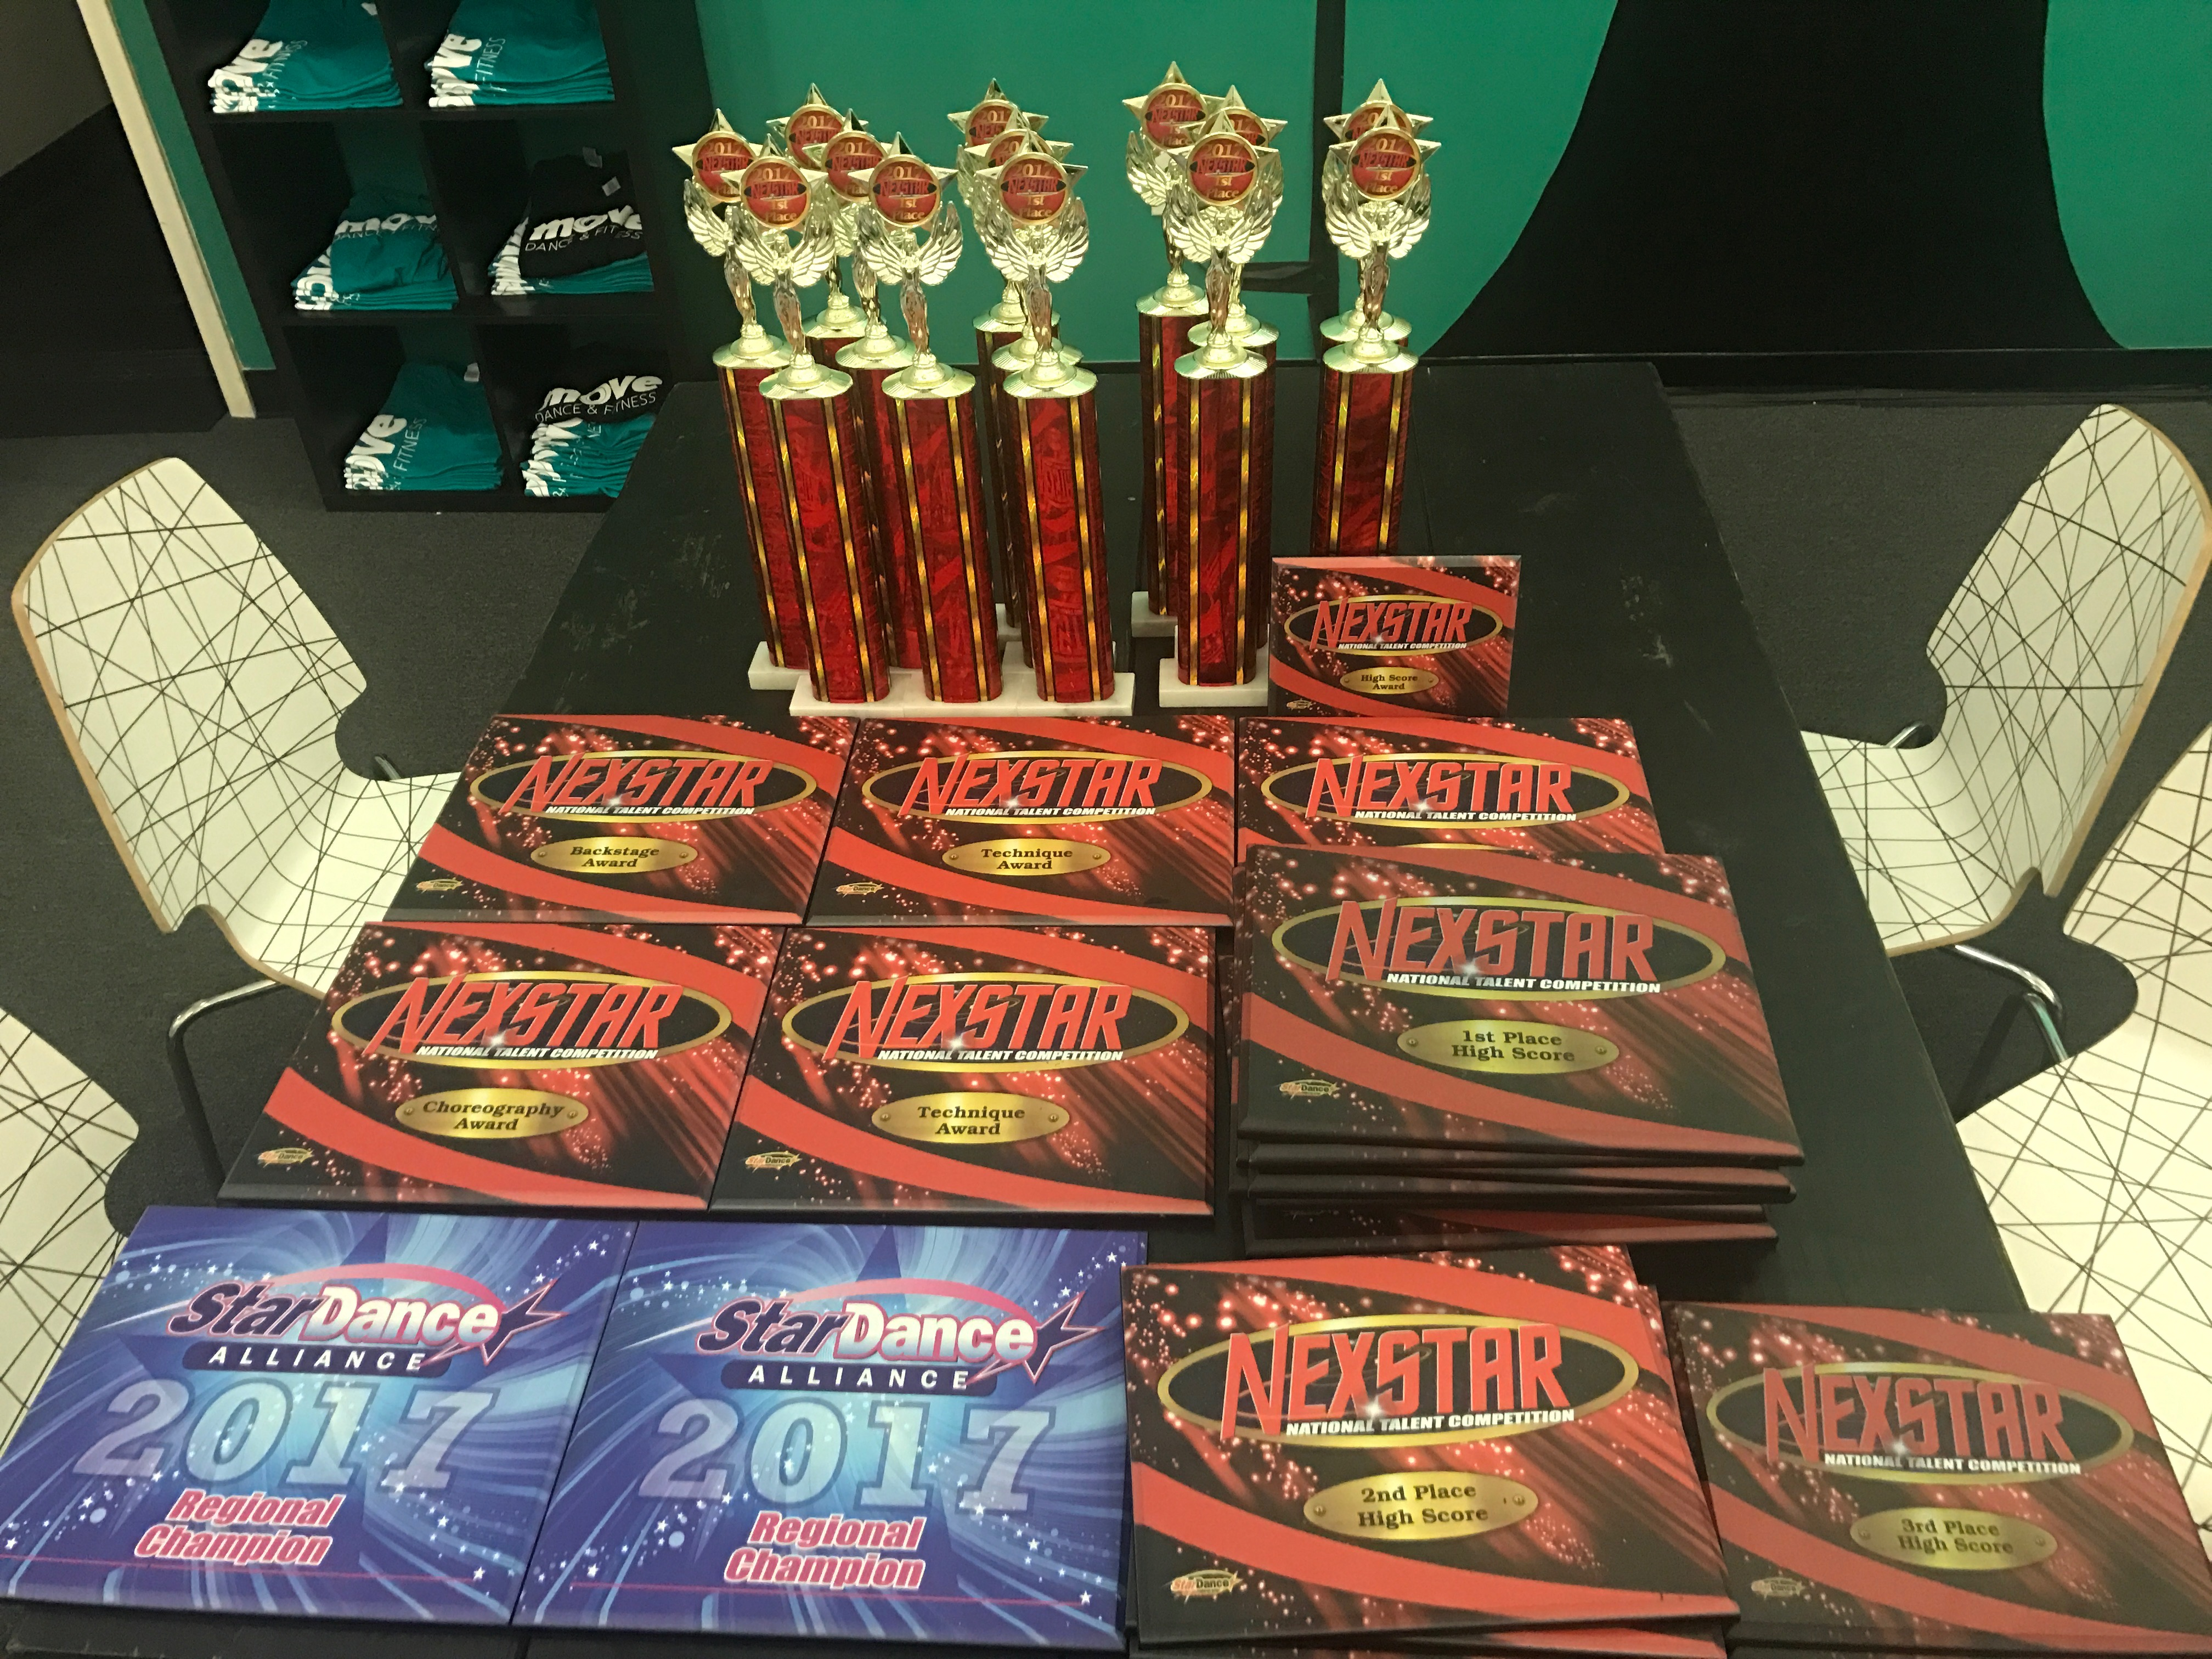 Move Dance and Fitness awards NexStar